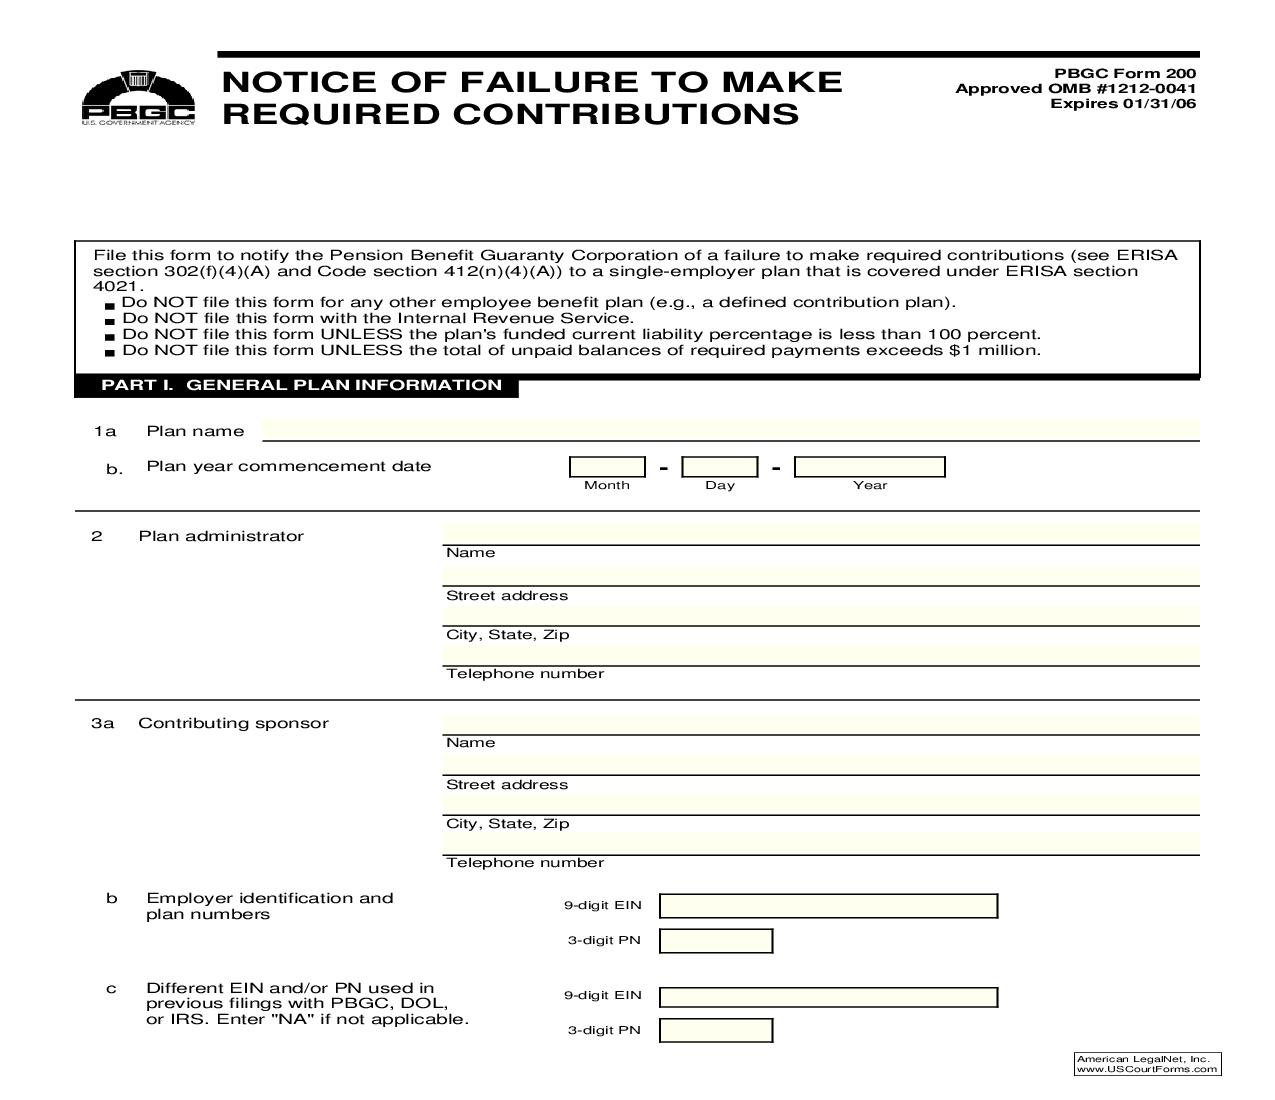 Notice Of Failure To Make Required Contributions {PBGC 200} | Pdf Fpdf Doc Docx | Skadden